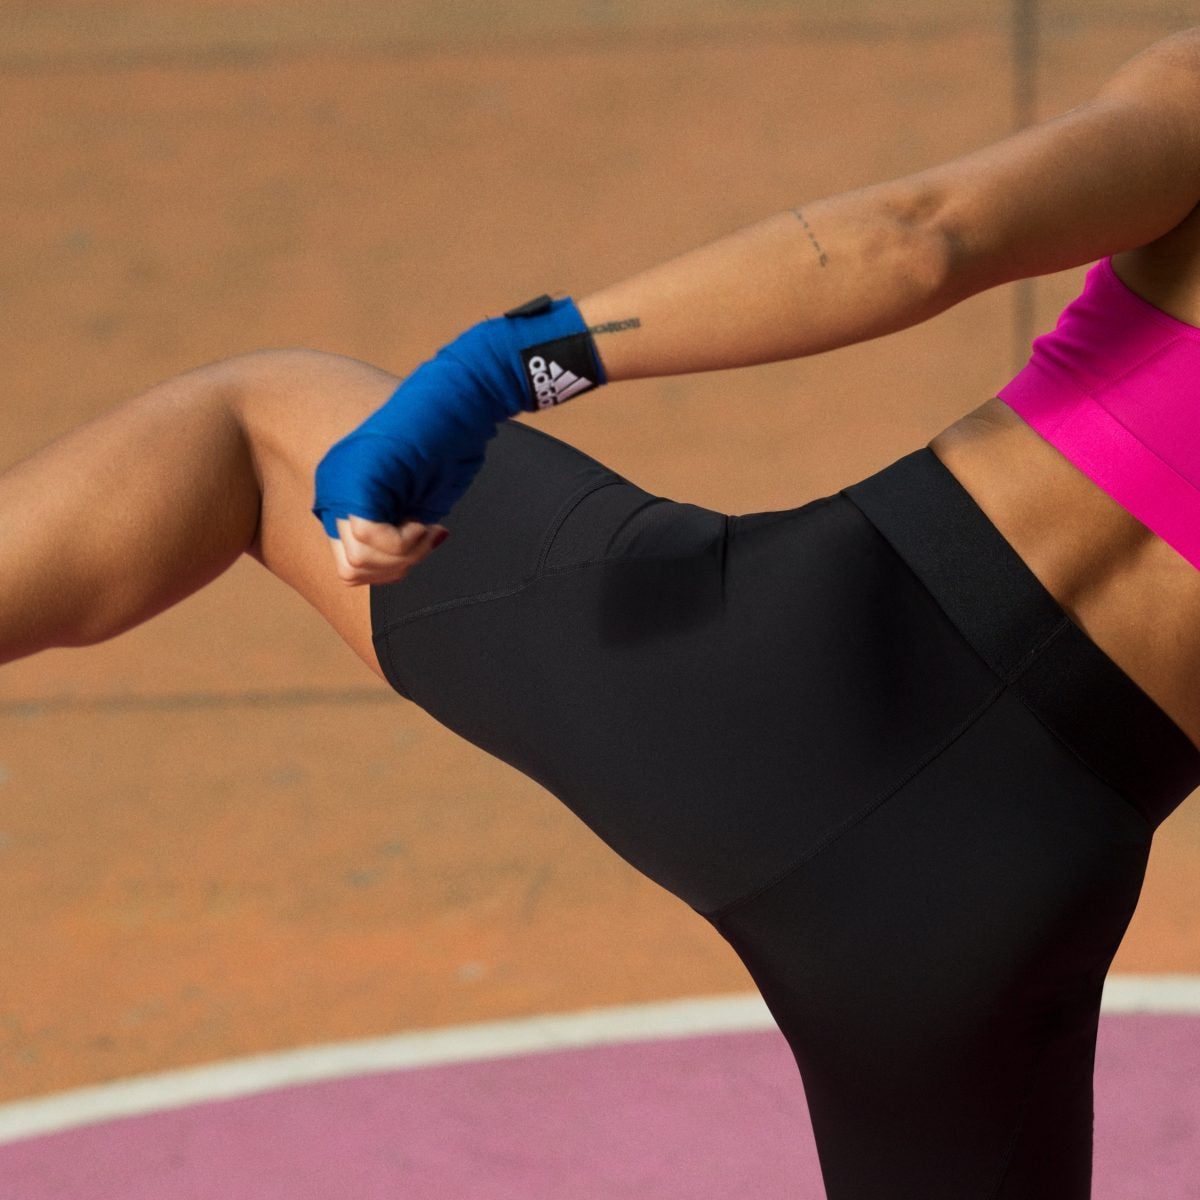 Adidas Is Tackling One Of The Biggest Taboos In Women's Sports: Periods